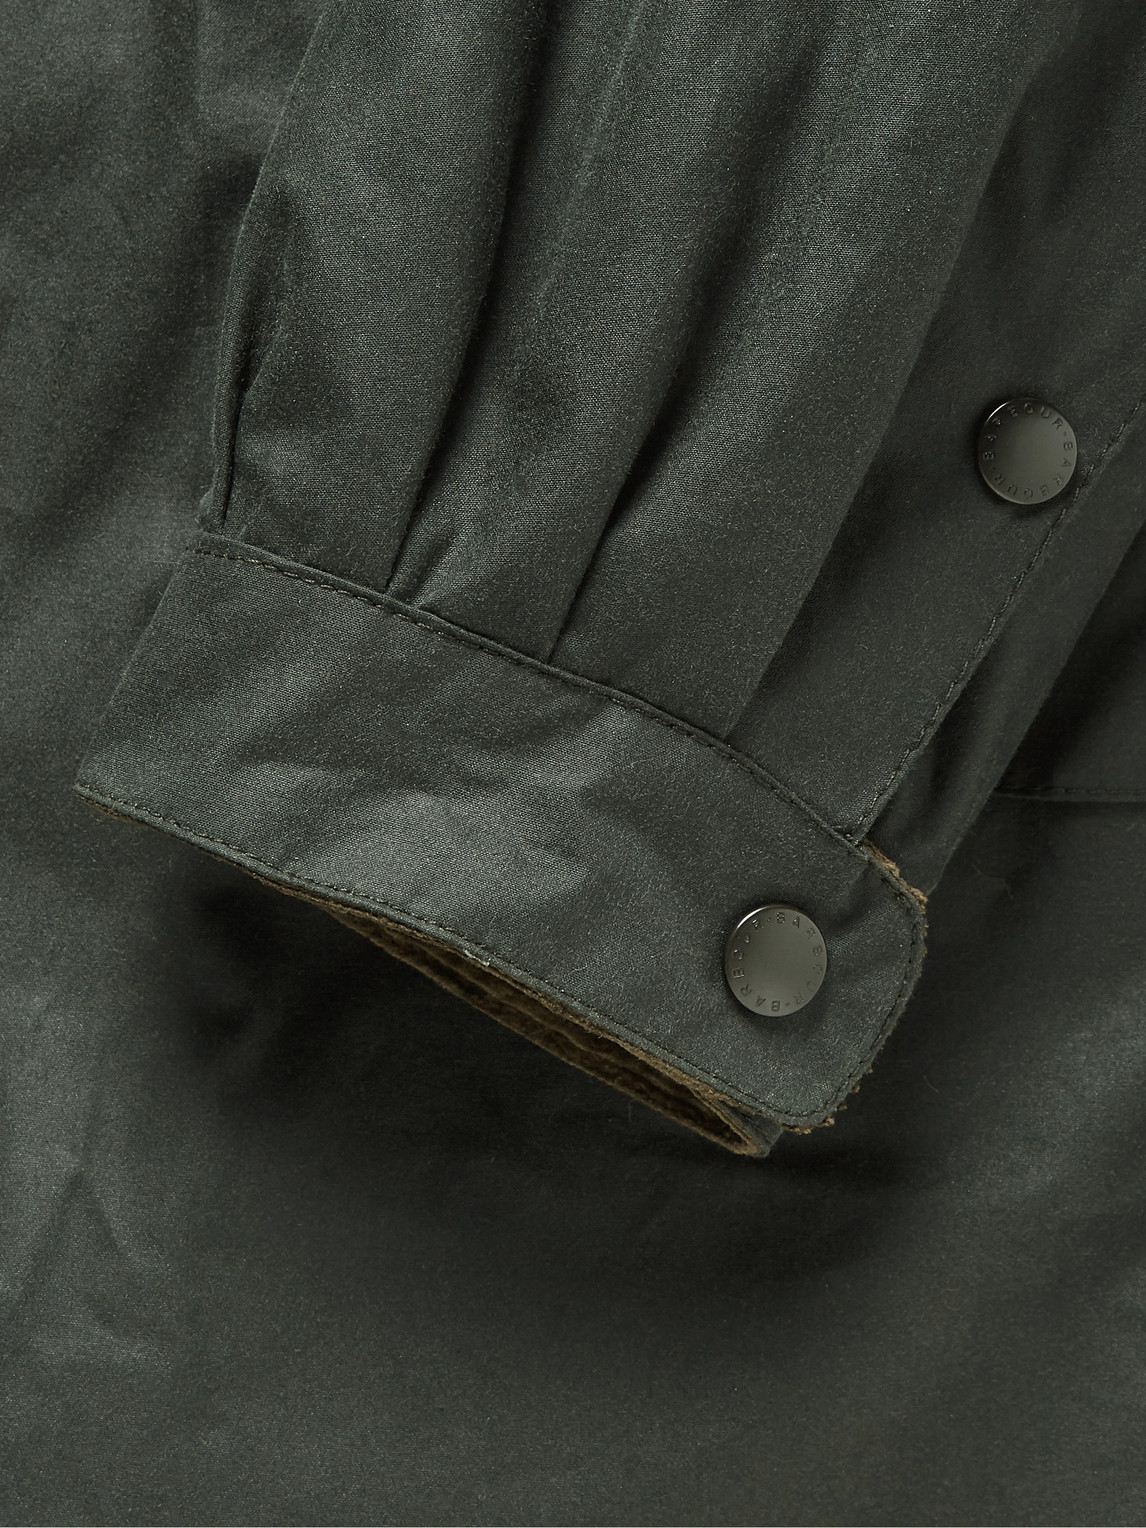 Barbour White Label - White Label Despatch Riders Belted Corduroy-trimmed Waxed-cotton Jacket - Green - M - Men